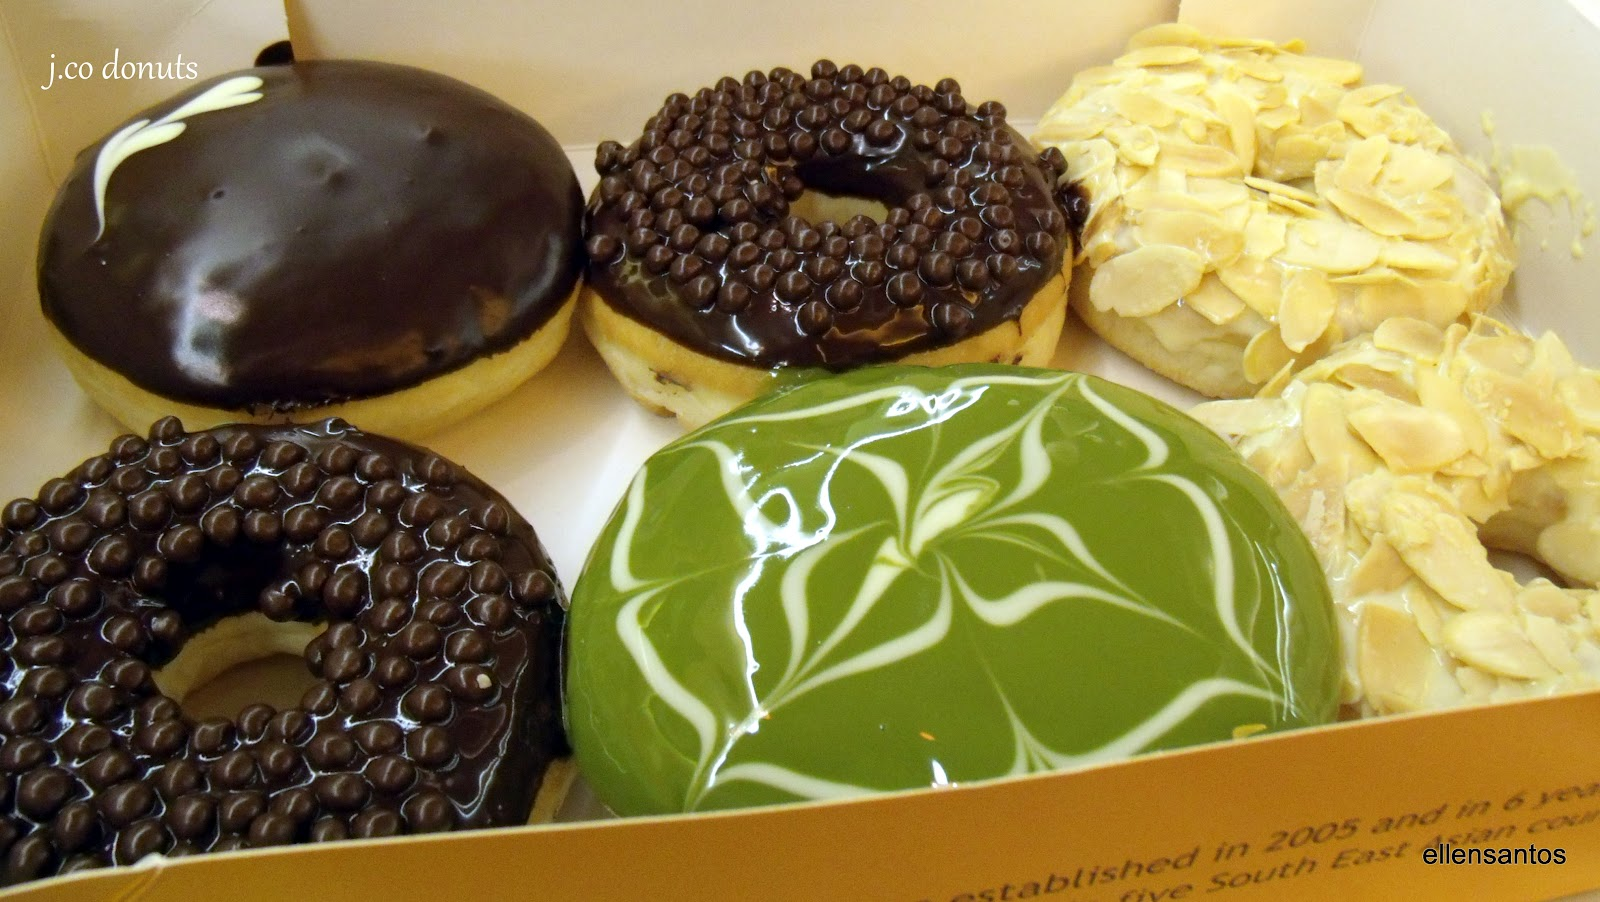 jco donut and coffee J co donuts and coffee, pasay: see 24 unbiased reviews of j co donuts and  coffee, rated 3 of 5 on tripadvisor and ranked #241 of 535 restaurants in pasay.